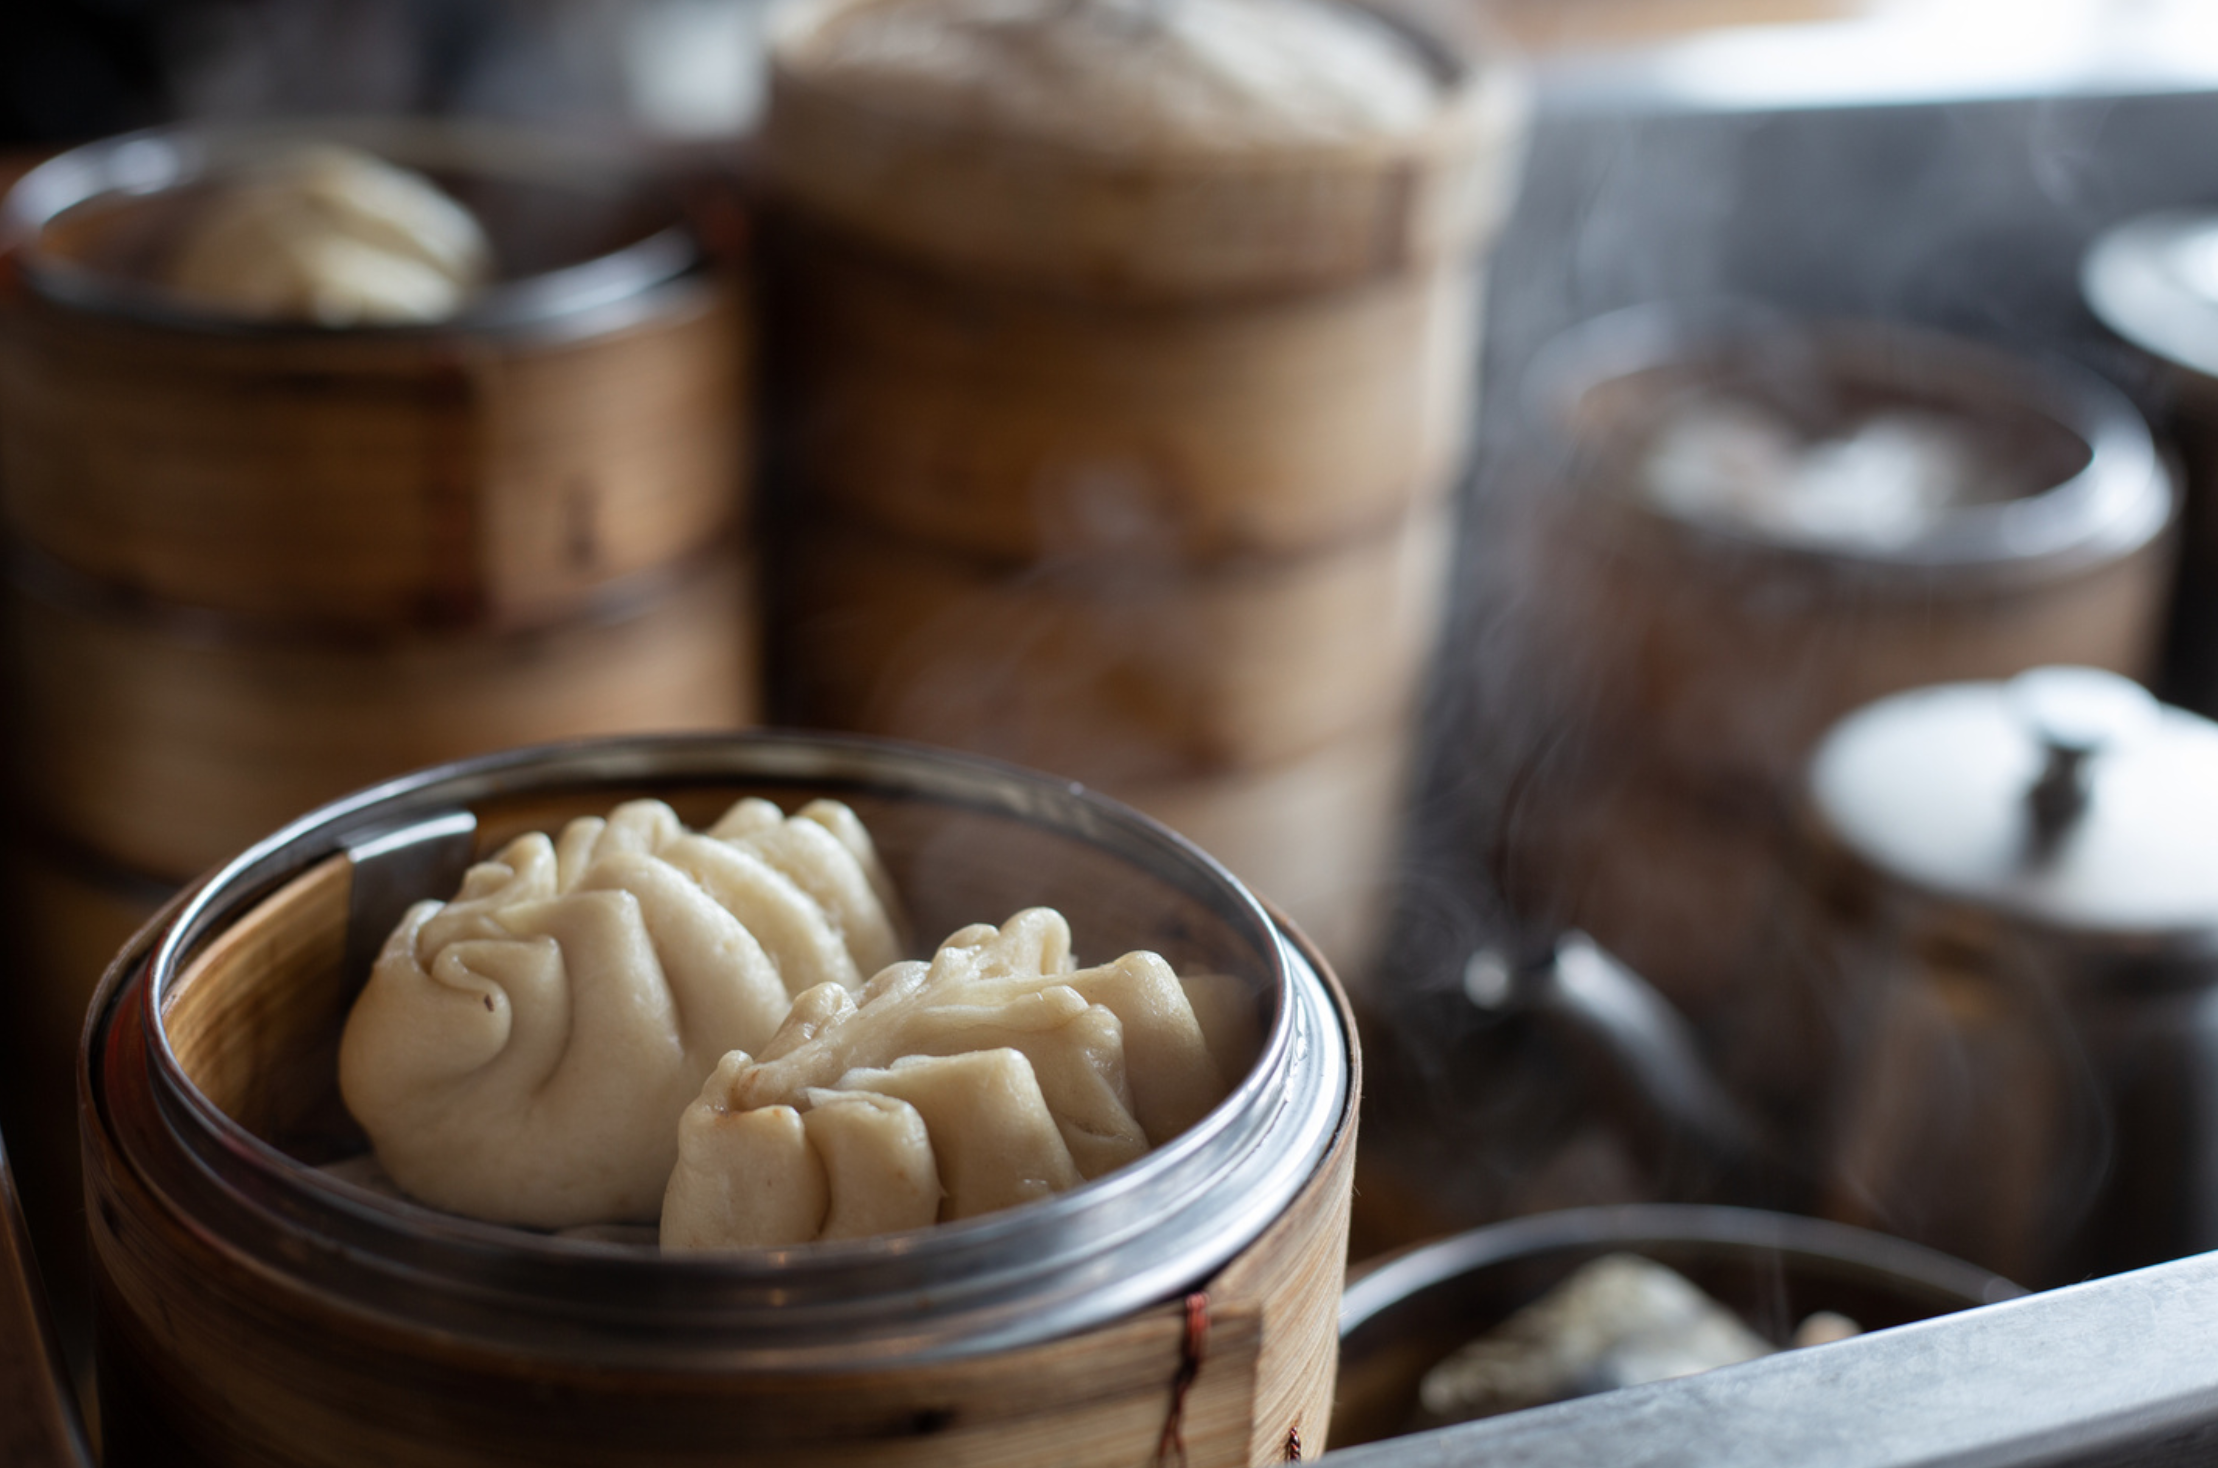 Boke Bowl now offers Dim Sum (Westside only) every Saturday and Sunday from 11AM – 2PM